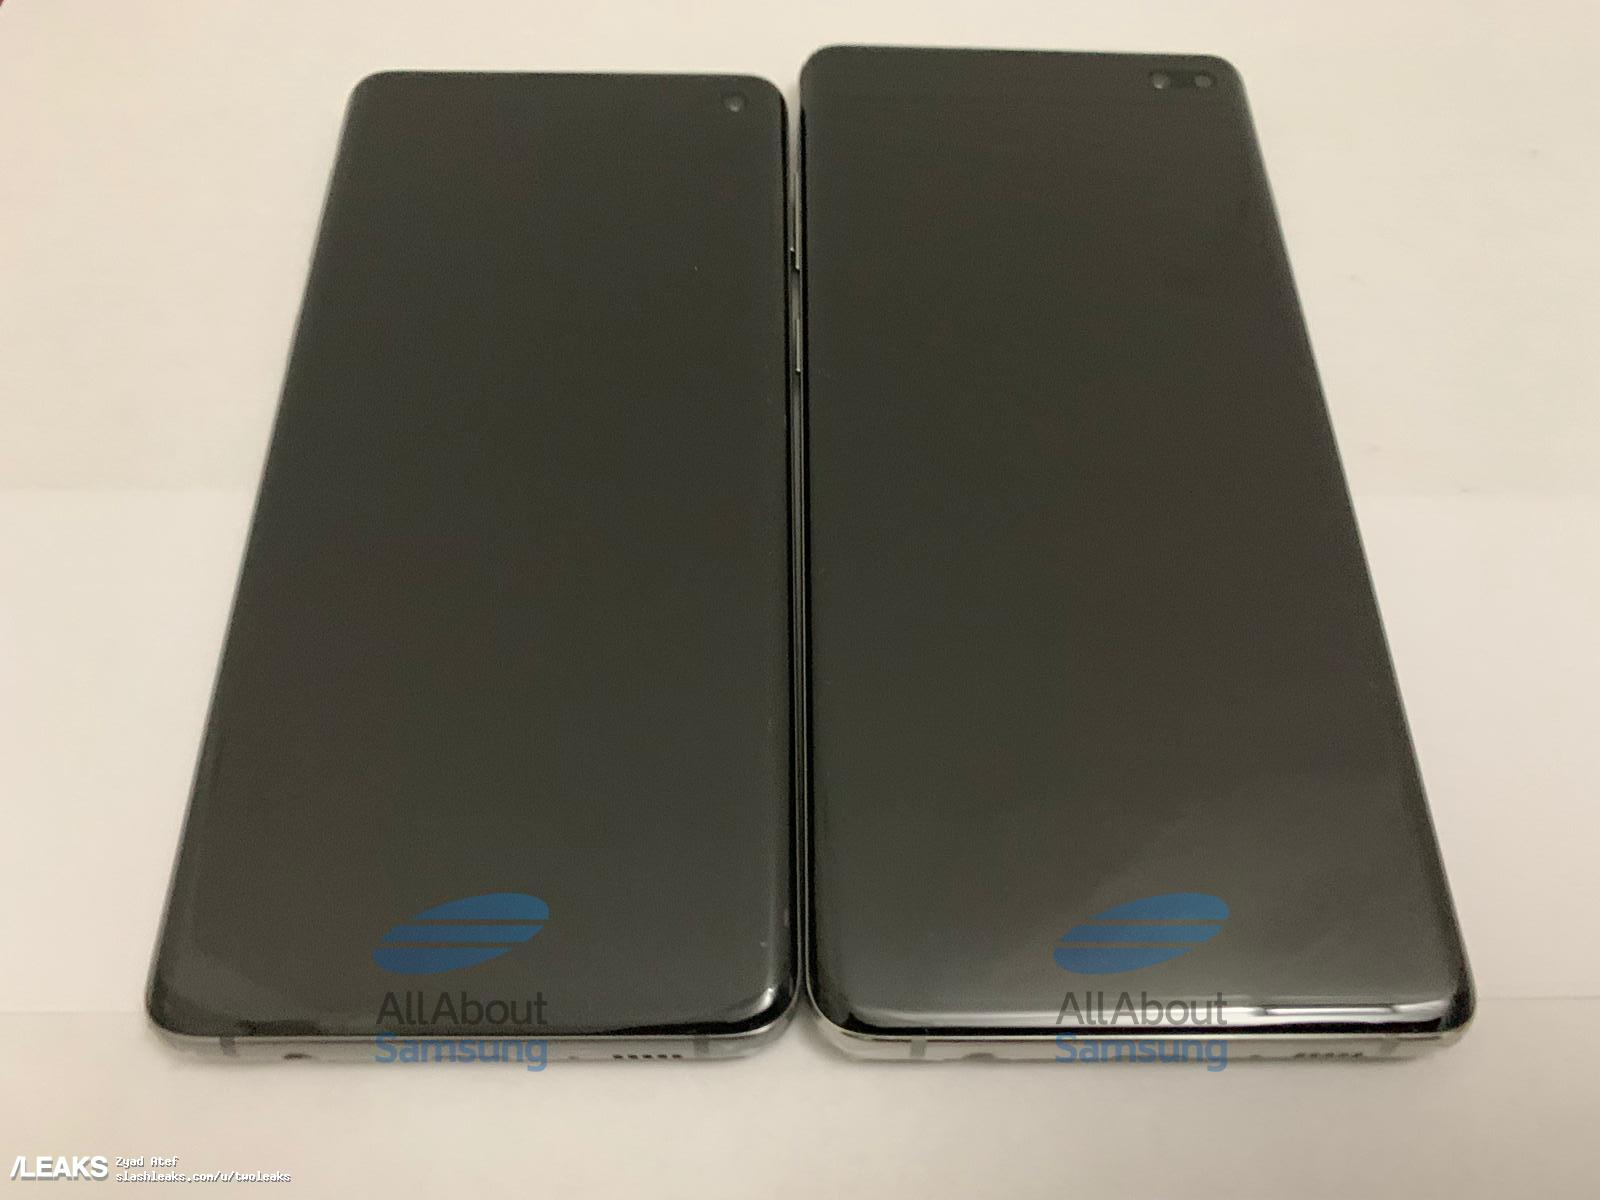 First High Quality Pictures Of The Samsung Galaxy S10 And